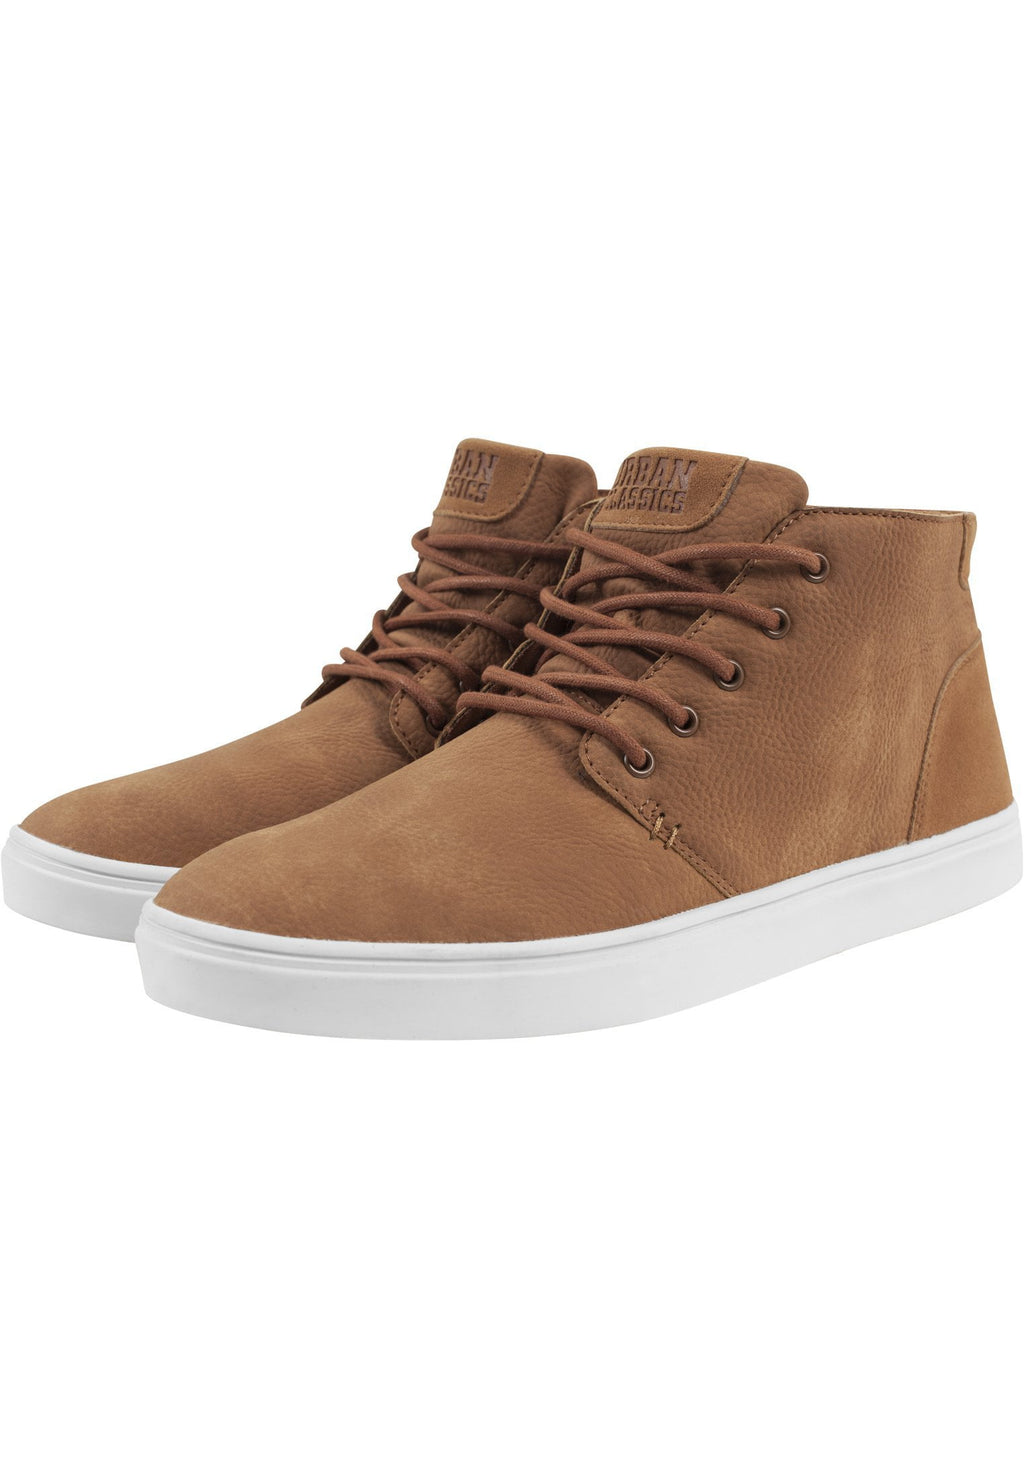 Hibi Mid Shoe - Brown